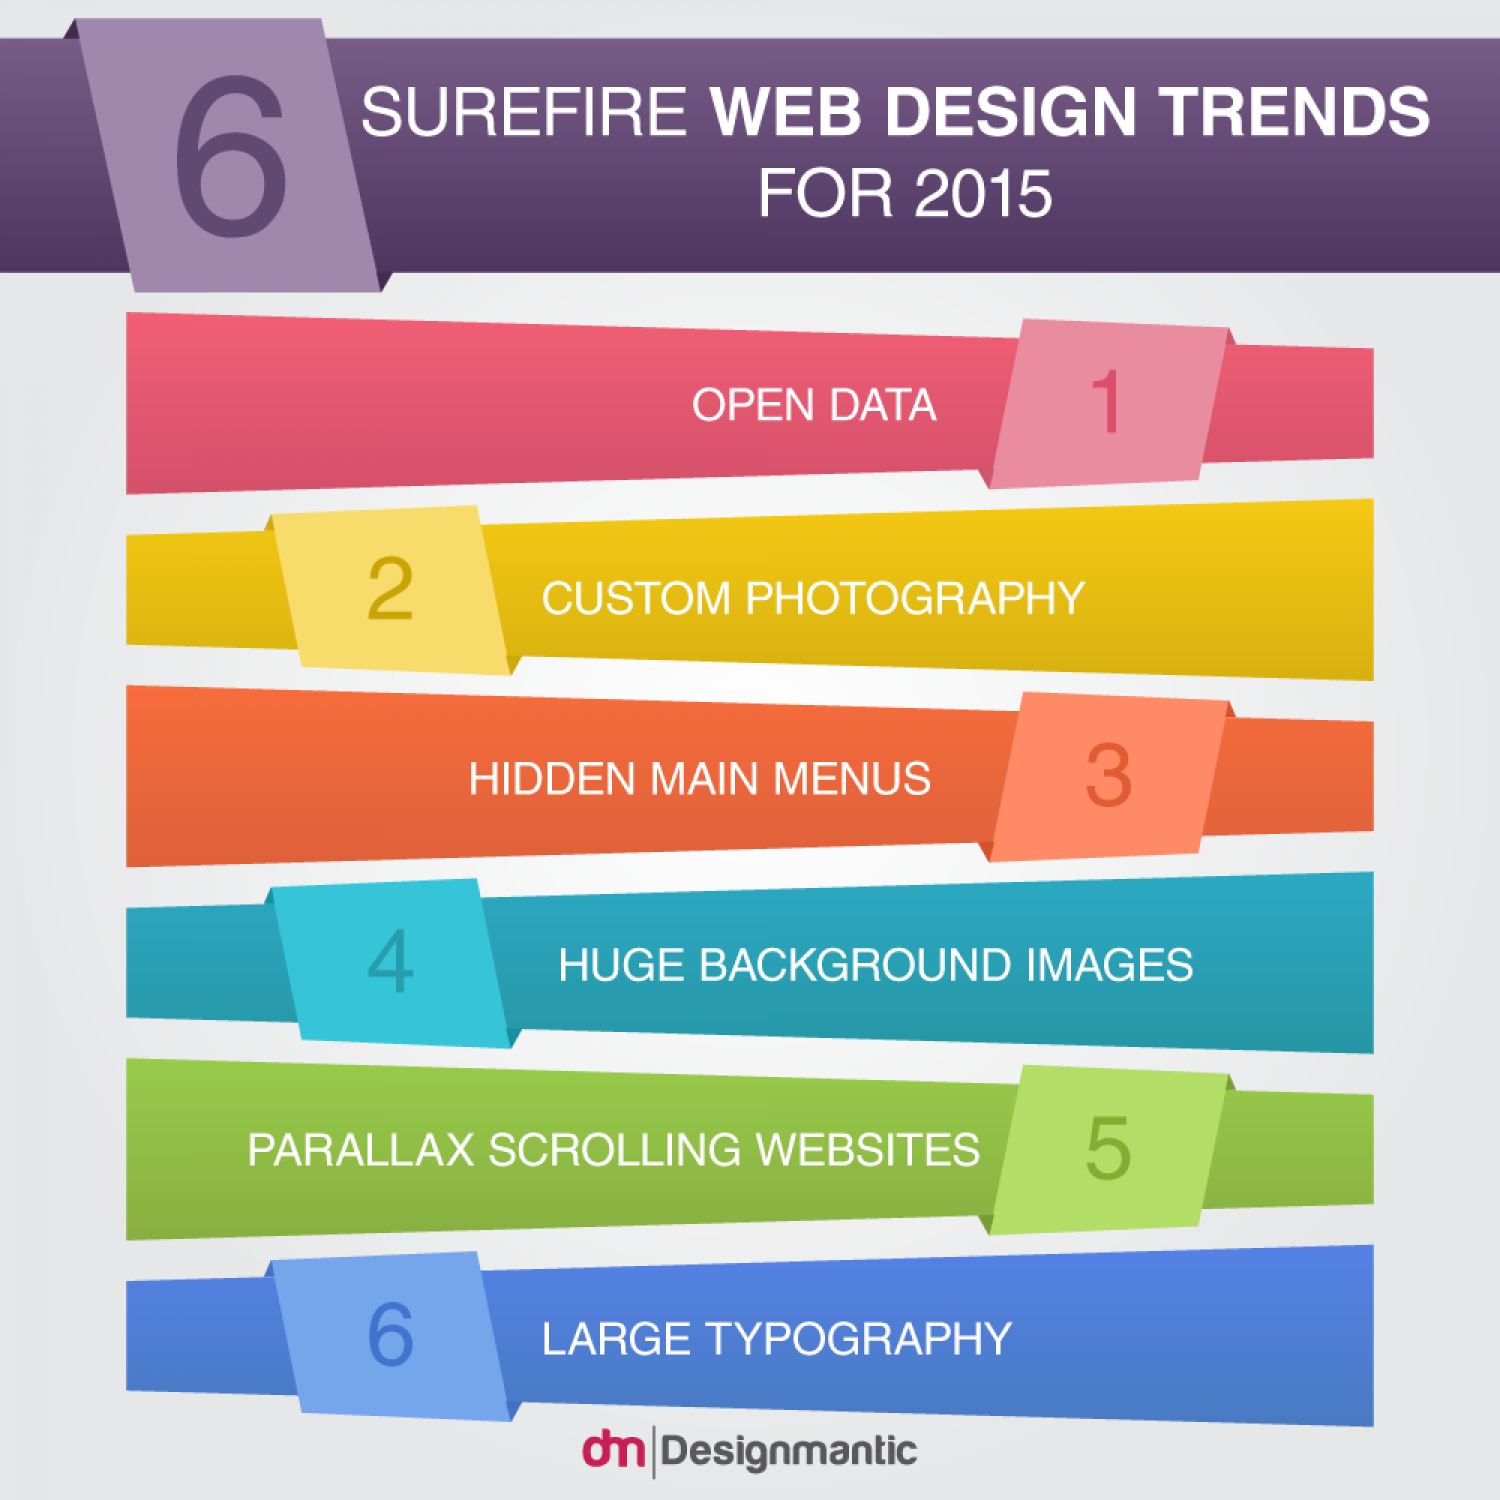 10 Things You Need To Know Before Hiring A Web Designer: 6 Surefire Web Design Trends For 2015